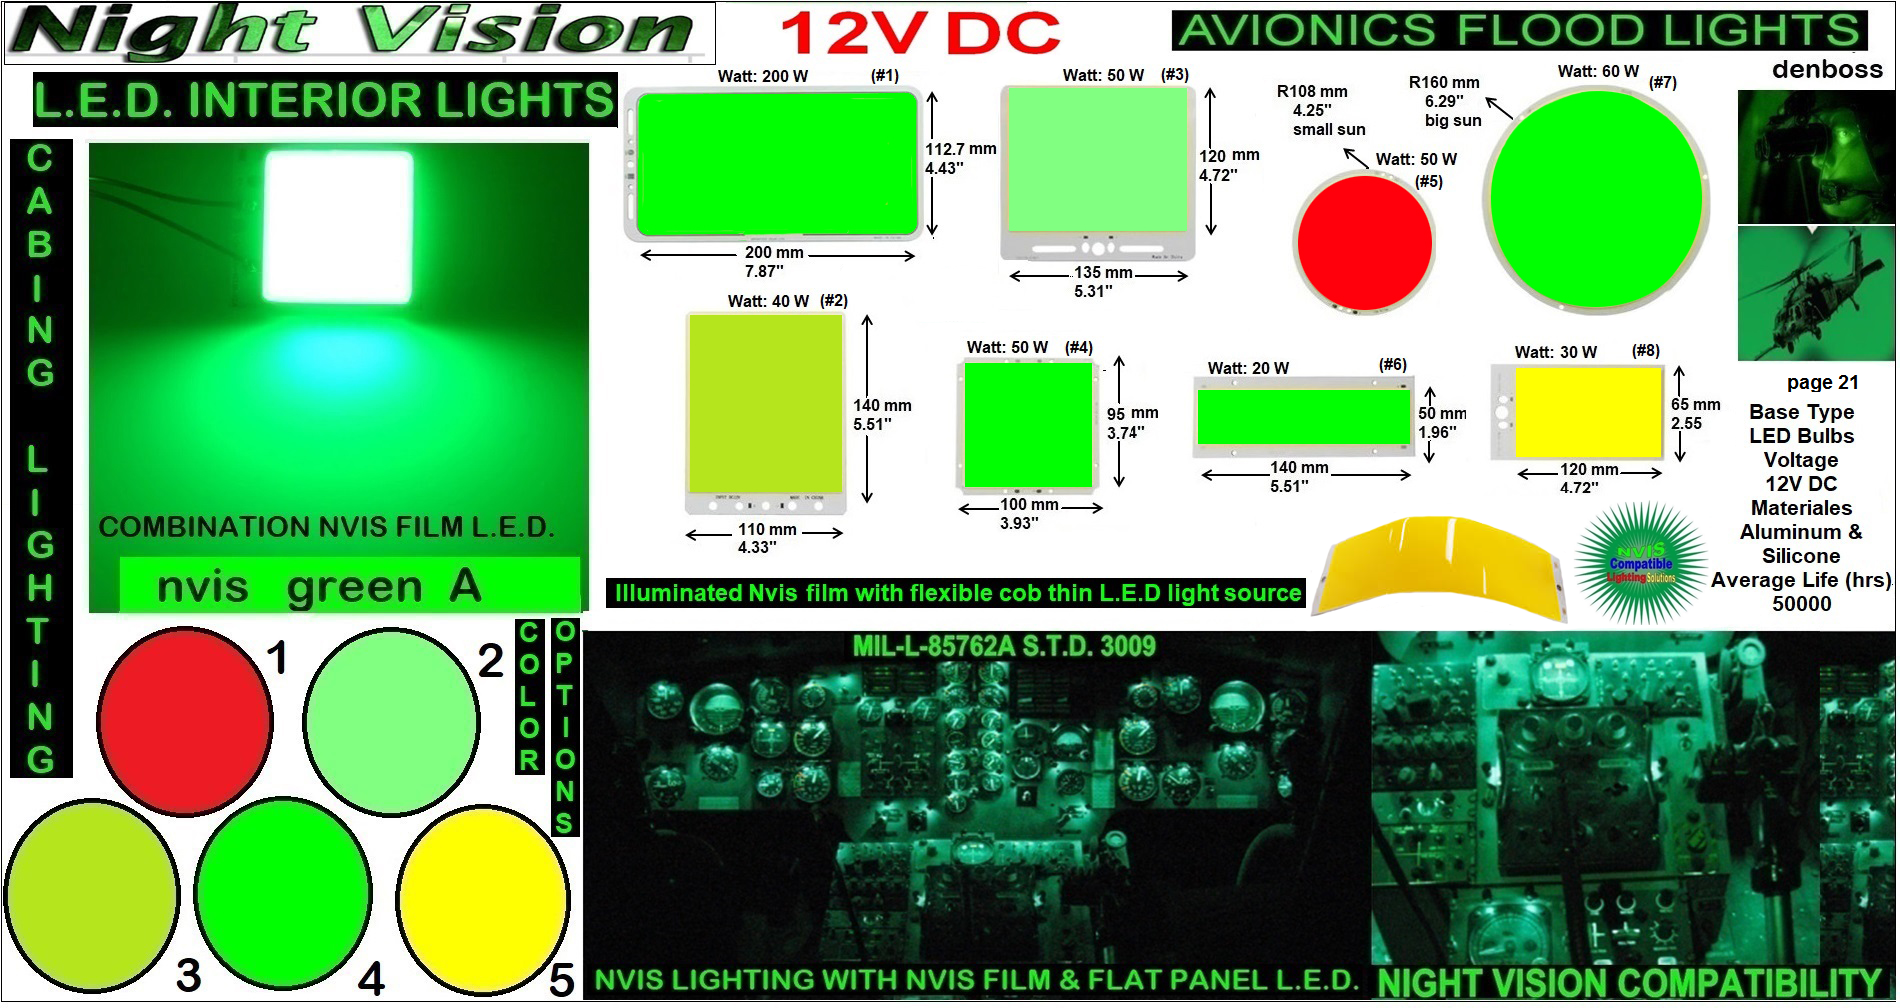 21 LED NVIS FILM FLAT LIGHTS COB LED 3-26-19 Panasonic Cf-52 (FPDC20-CF 52-CF 19 955 SMD PLCC LED L-65196-A0603-003 L-65330-A0603-003 L-65197-B0603-003 955 SMD PLCC LED L-65250-B0603-003 L-65648-W0603-003 L-65951-W0603-003 L-65401-Y0603-003 L-65402-Y0603-003   L-65403-R0603-003  L-65196-A0805-003 L-65330-A0805-003 L-65197-B0805-003 L-65250-B0805-003 L-65648-W0805-003 L-65951-W0805-003 L-65401-Y0805-003 L-65402-Y0805-003 L-65403-R0805-003L-65196-A1206-002 L-65330-A1206-002 L-65197-B1206-002L-65250-B1206-002L-65648-W1206-002 L-65951-W1206-002L-65401-Y1206-002 L-65402-Y1206-002  L-65403-R1206-002 L-65196-A1206-003 L-65330-A1206-003 L-65197-B1206-003 L-65250-B1206-003 L-65648-W1206-003L-65951-W1206-003L-65401-Y1206-003L-65402-Y1206-003 955 LED NVIS 955 LED  955 LED HELICOPTERS NIGHT VISION LIGHTING   955 NVIS FILTER L-65403-R1206-003L-65196-A320-001L-65330-A320-001 L-65197-B320-001 L-65250-B320-001 L-65648-W320-001 L-65951-W320-001 L-65401-Y320-001 L-65402-Y320-001 L-65403-R320-001 L-65196-A670-001 L-65330-A670-001 L-65197-B670-001 L-65250-B670-001 L-65648-W670-001 L-65951-W670-001 L-65401-Y670-001 L-65401-Y670-001 L-65403-R670-001 L-65196-A460-001 L-65196-A460-001 L-65197-B460-001  L-65250-B460-001 L-65648-W460-001 L-65951-W460-001 L-65401-Y460-001 955 Night Vision Imaging Systems (NVIS)  955 NVIS Aircraft Upgrades | Night Vision Goggles 955 PILOT NIGHT VISION NVIS ILLUMINATION  955 LED SWITCHES, KEYBOARDS, DIALS, AND DISPLAYS 955 COCKPIT MODIFICATION 955 NVIS compatible lights  955 NVIS filters . NVG lighting 955 NVG lighting control panel customized 955 SMD LED  955 NVIS compatible lights  955 NVIS compatible lights CHIP  955 SMD LED NVIS   955 SMD LED NIGHT VISION  955 SMD PLCC LED AVIONICS 955 AVIONICS NIGHT VISION LIGHTING 955 AVIONICS MODIFICATIONS TO NIGHT VISION  955 LED AVIONICS UPGRADES TO NVIS 955 LED NVIS GREEN A 955 IMPACT SOLAR FILTER NVIS 955 LED NVIS GREEN B 955 LED NVIS WHITE  955 LED NVIS RED  955 LED AIRBUS A 400 GREEN  955-001 SMD PLCC LED  955-001 